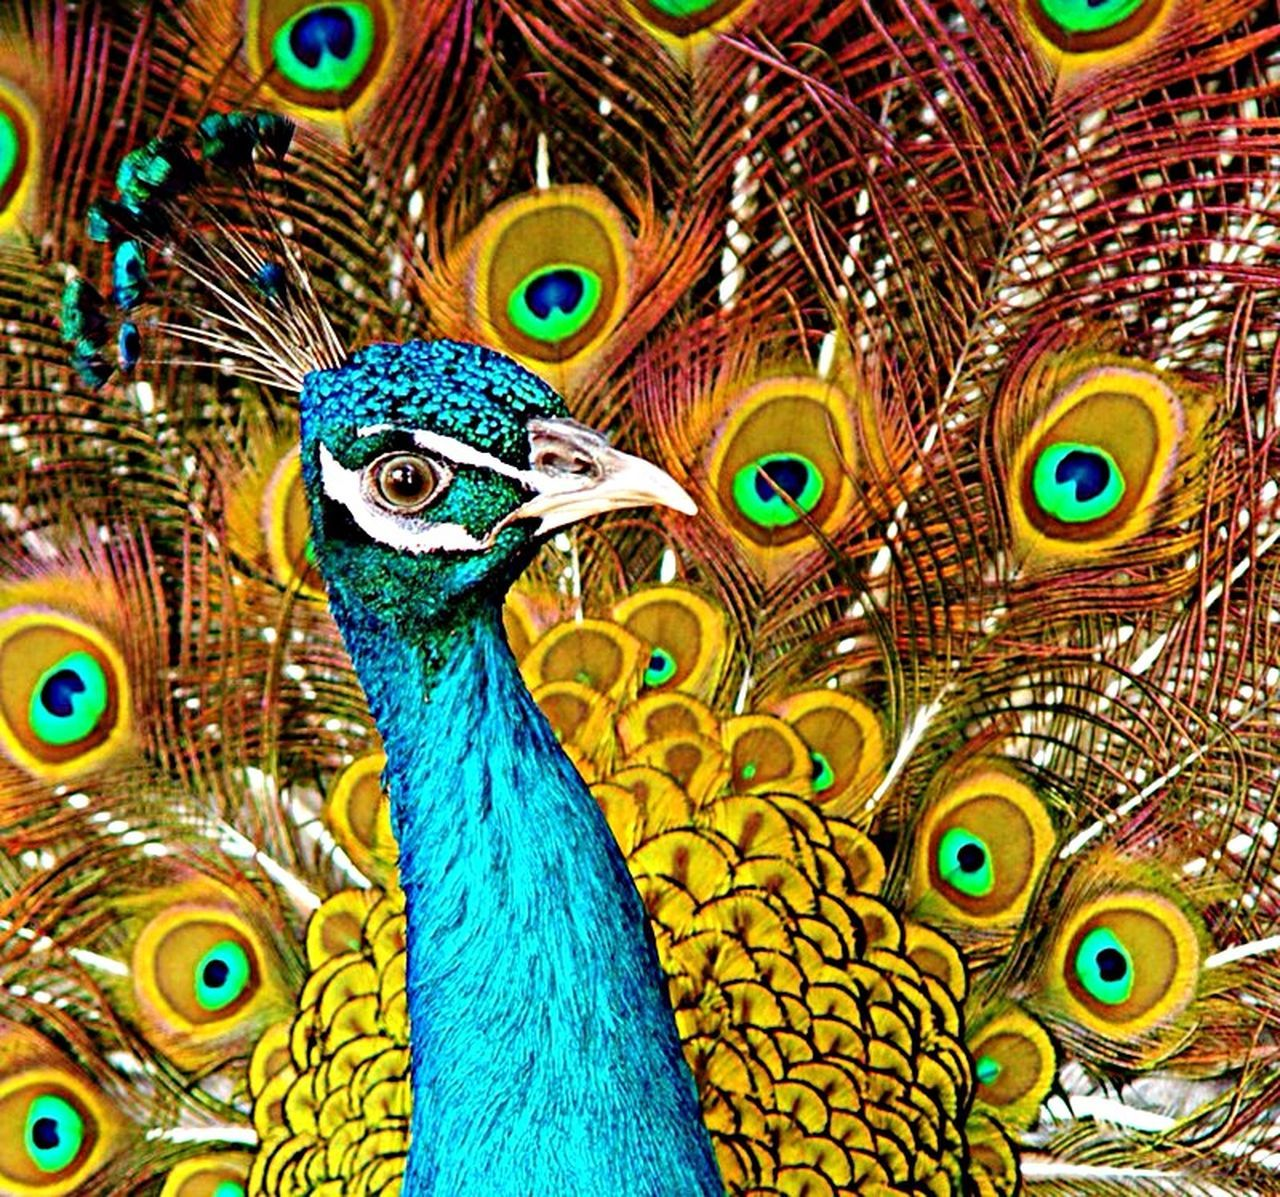 peacock, peacock feather, bird, feather, multi colored, fanned out, animal themes, one animal, close-up, looking at camera, beauty in nature, animal wildlife, day, no people, nature, full frame, animals in the wild, portrait, outdoors